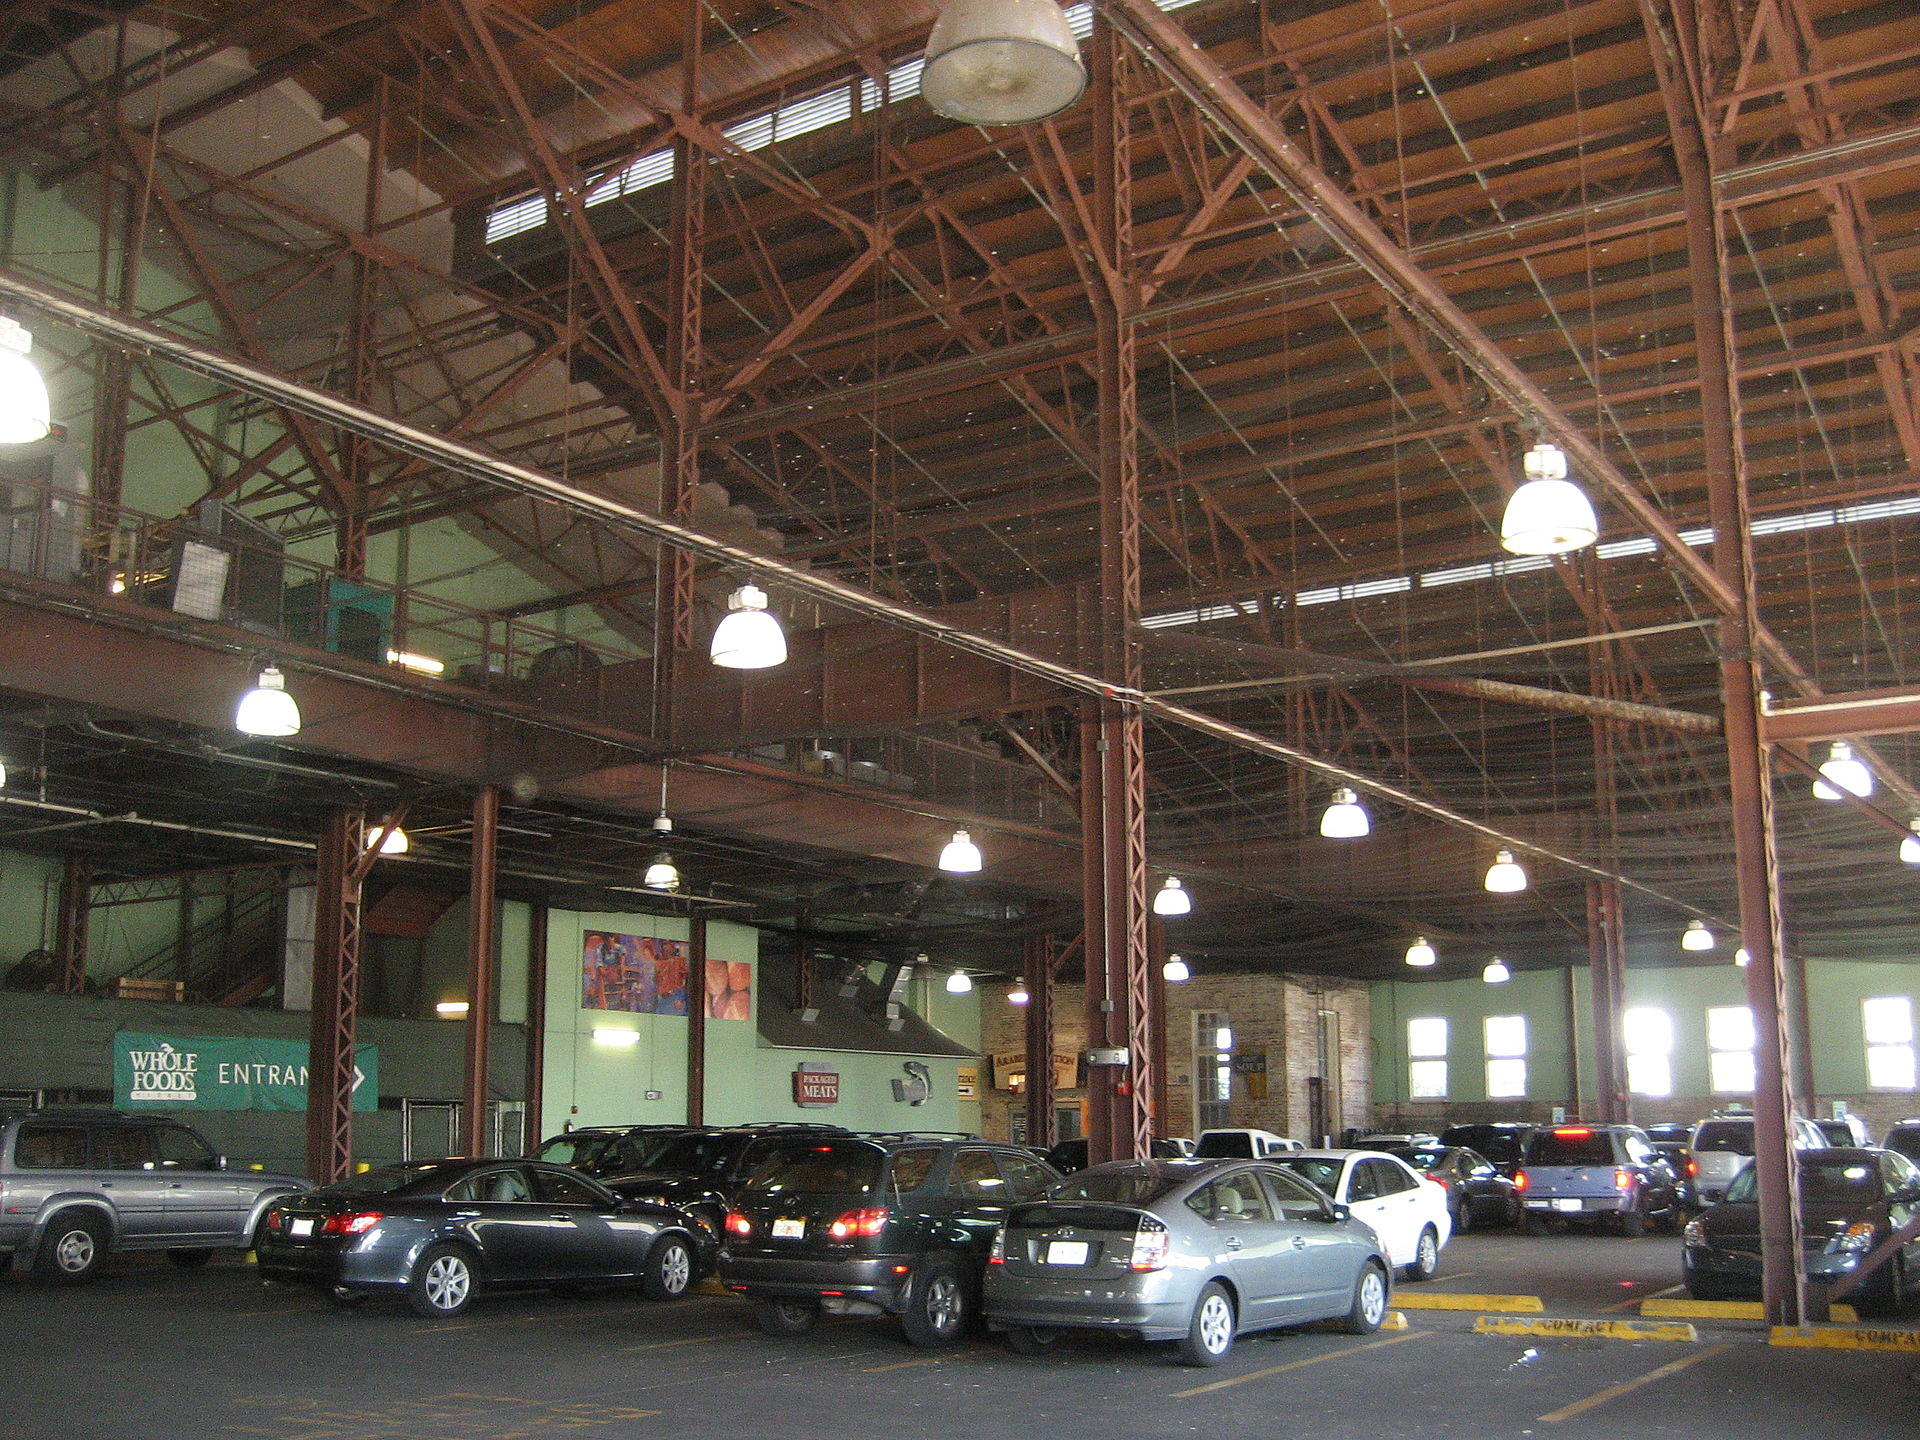 This part of the station, on the southern side, serves as a parking lot for the store.